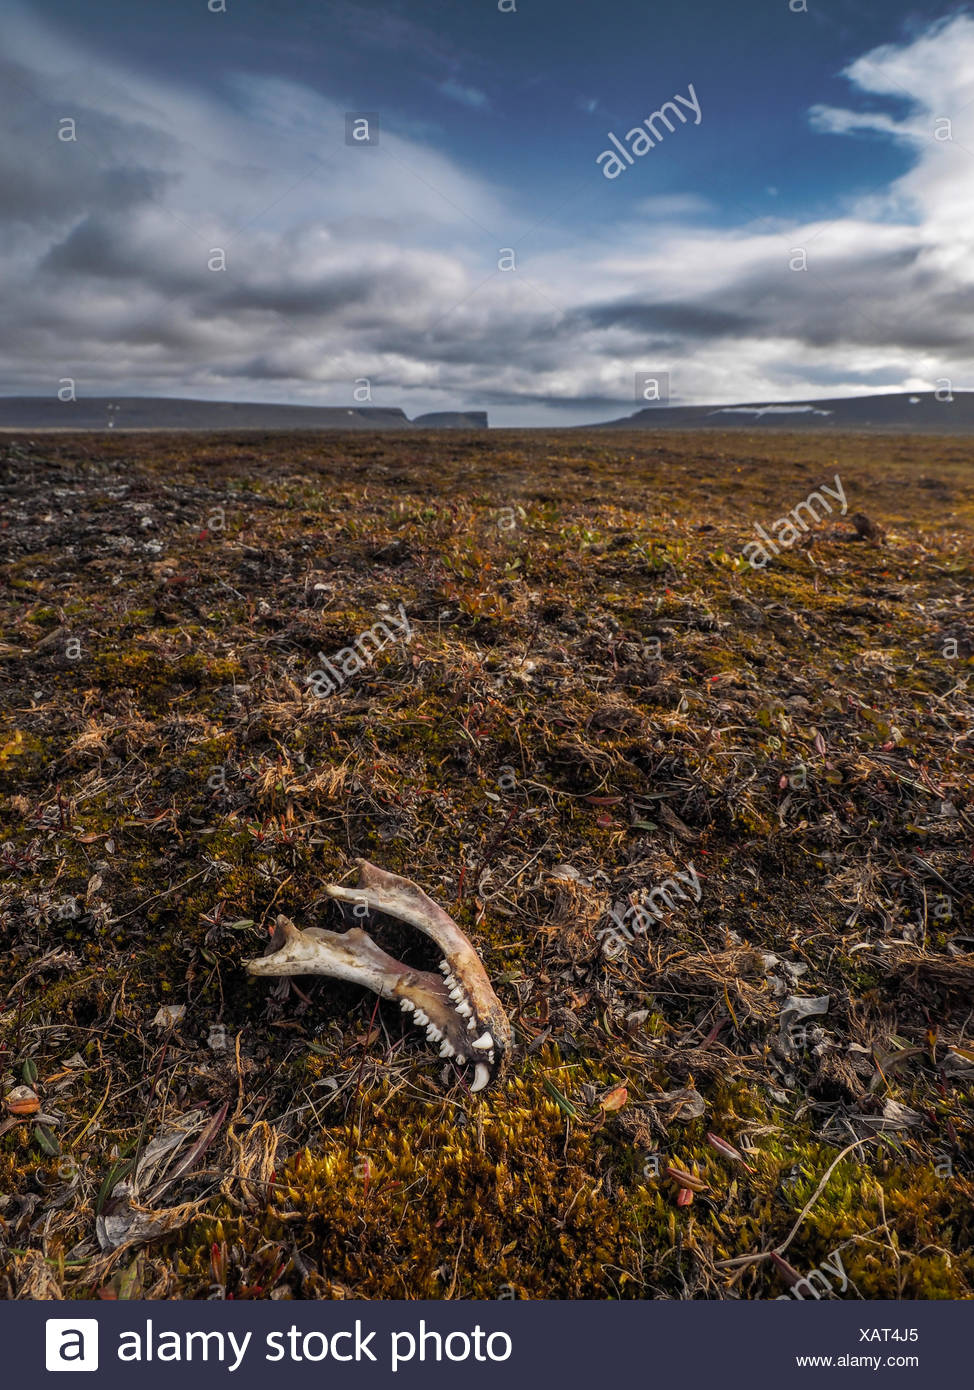 Animal jawbone stock photos animal jawbone stock images alamy the jawbone of an animal in a barren and windswept tundra stock image biocorpaavc Image collections